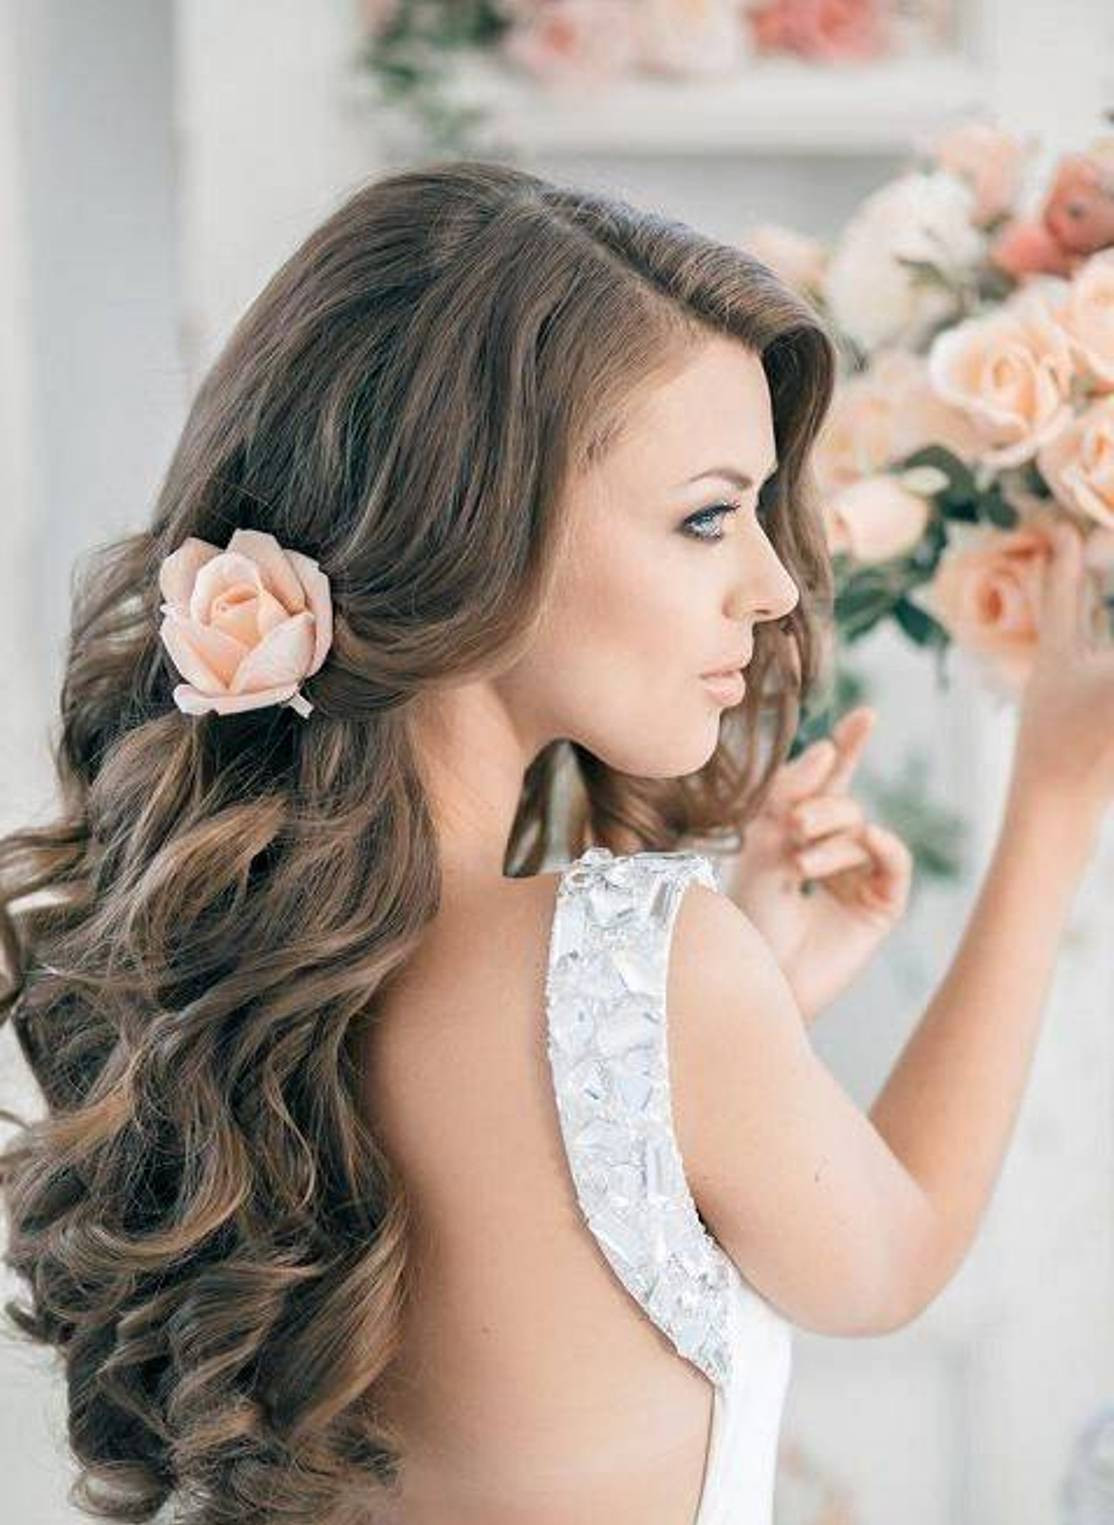 Best ideas about Hairstyles For Long Hair Wedding . Save or Pin 35 Latest And Beautiful Hairstyles For Long Hair Now.